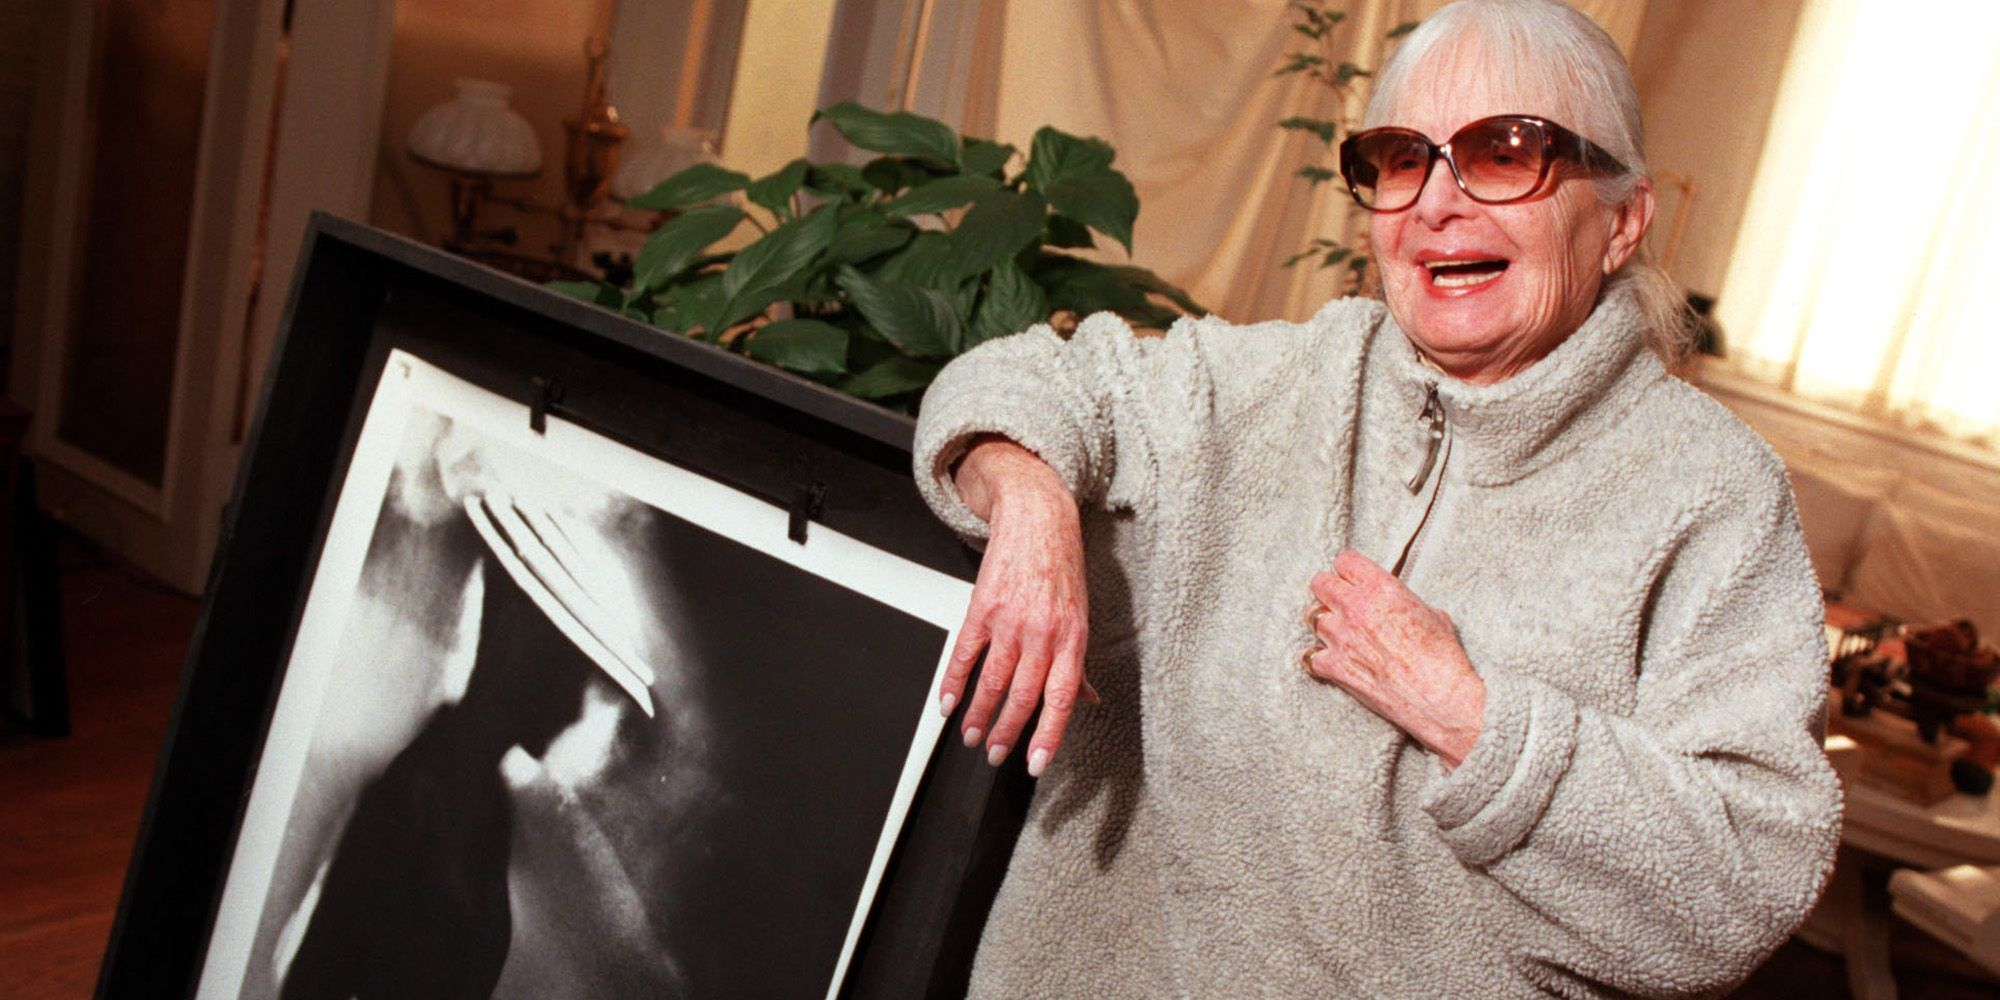 <p><strong> </strong>Famous for her dreamlike black and white images during the 40s and 50s, Lillian Bassman was a rarity in the male-dominated fashion photography field. Her unique aesthetic earned her the title of art director of <em>Harper's BAZAAR</em>'s erstwhile mini magazine, <i>Junior BAZAAR</i>. Bassman used tissues and gauzes to  create a dark, romantic quality that hadn't been seen in fashion imagery before.</p>